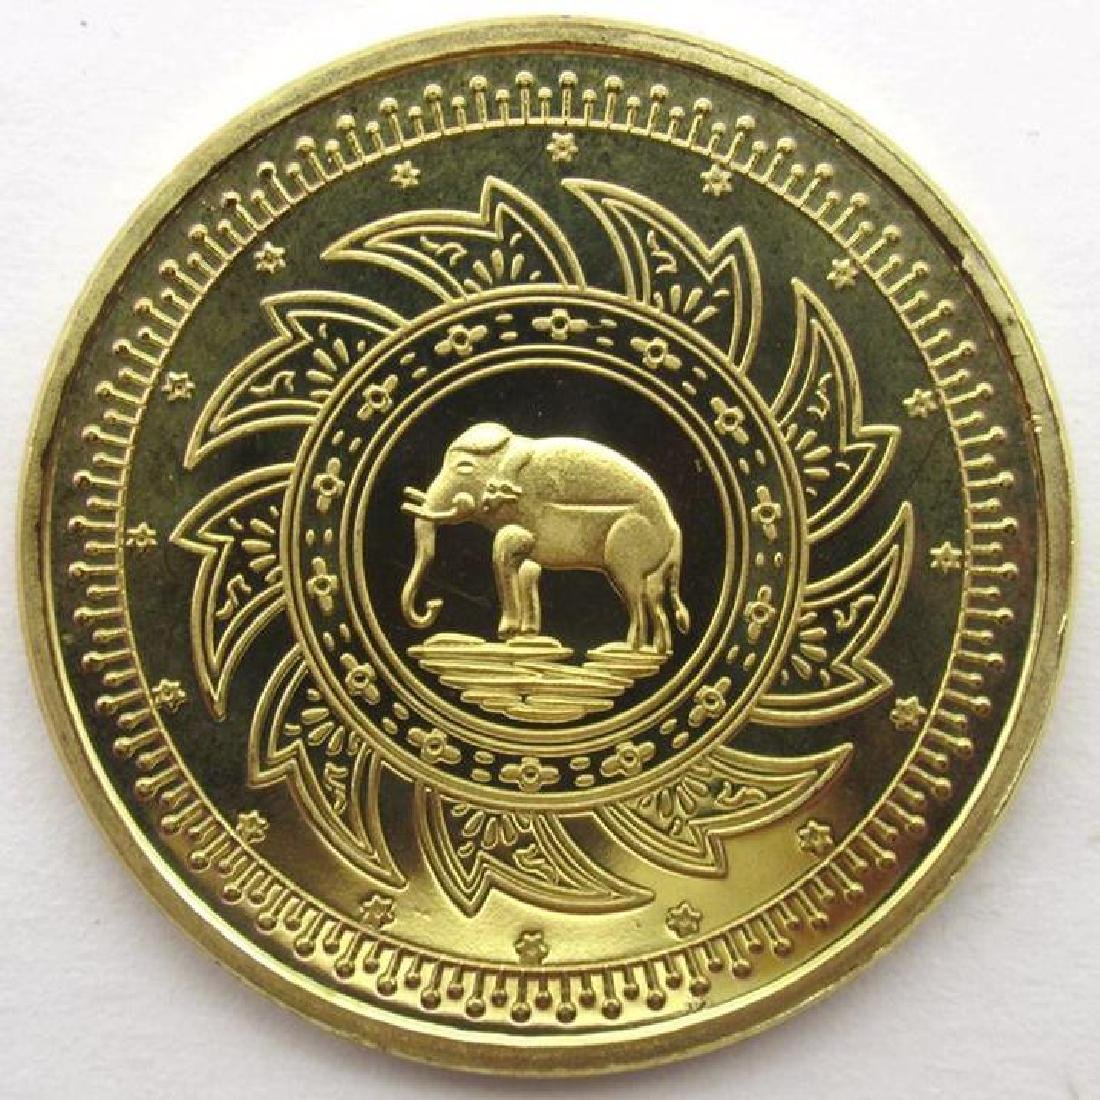 Buddhist Elephant And Temples Commemorative Coin